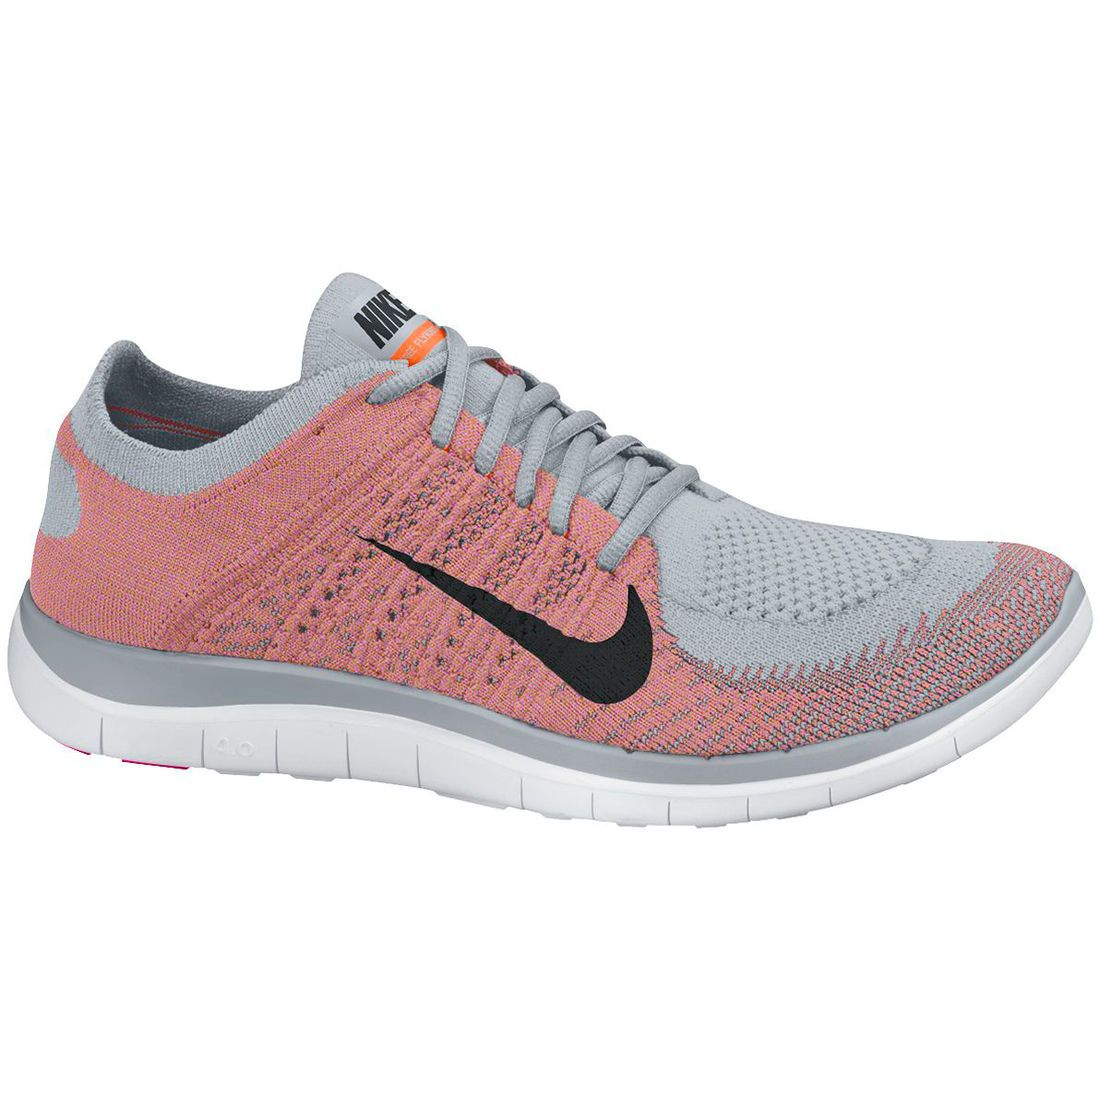 Femmes Nike Free 4.0 Chaussures Flyknit